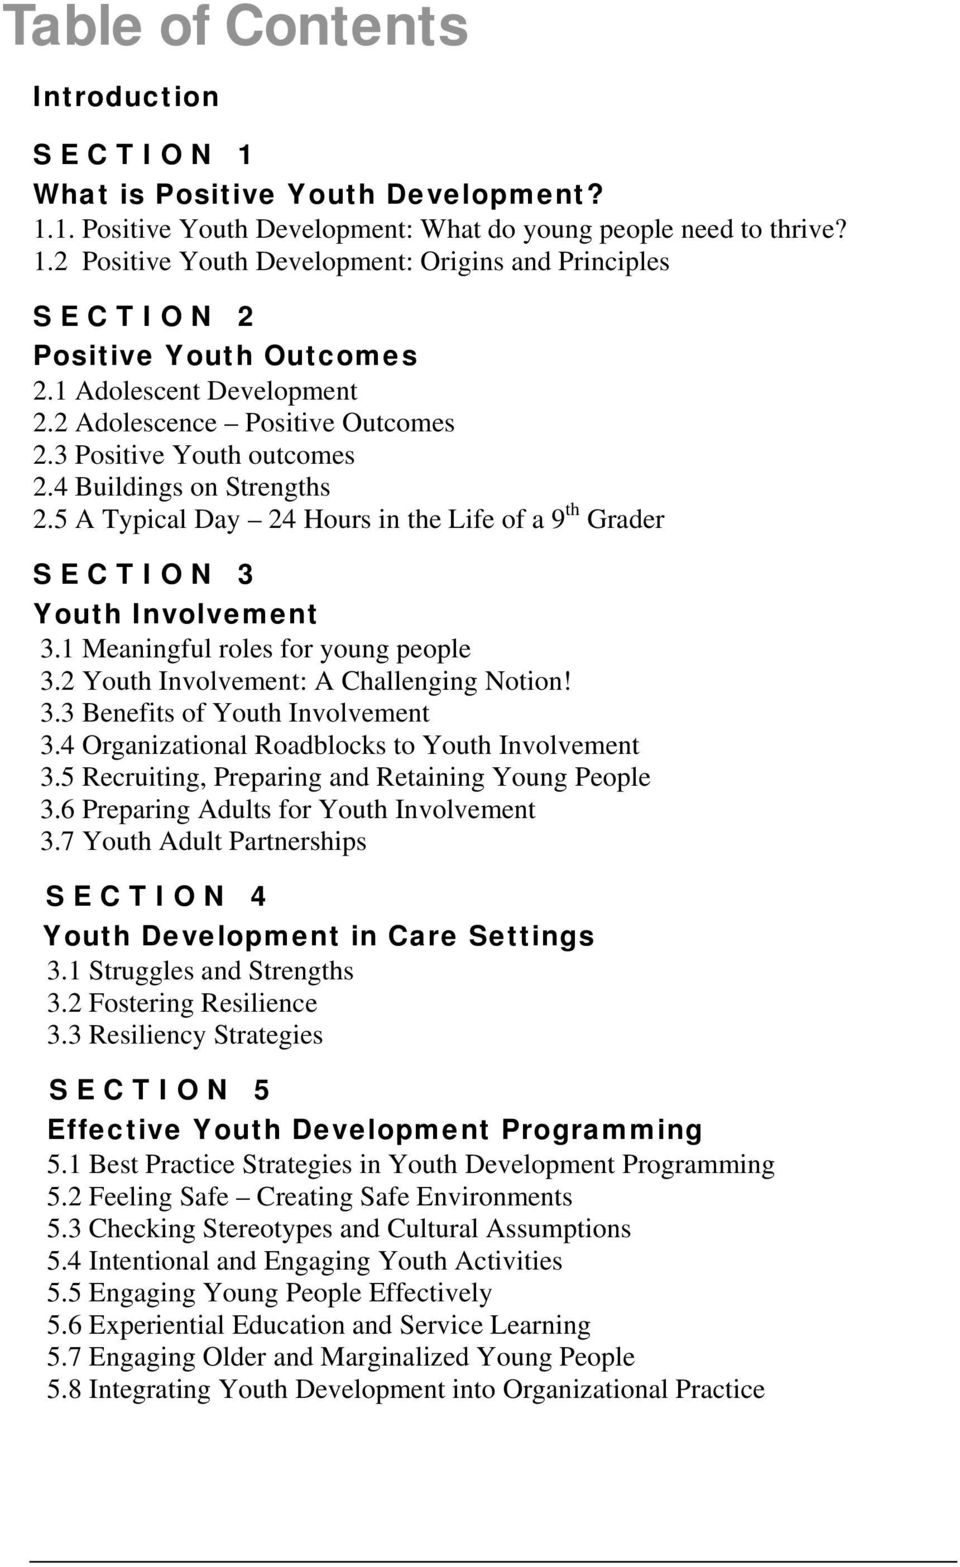 1 Meaningful roles for young people 3.2 Youth Involvement: A Challenging Notion! 3.3 Benefits of Youth Involvement 3.4 Organizational Roadblocks to Youth Involvement 3.